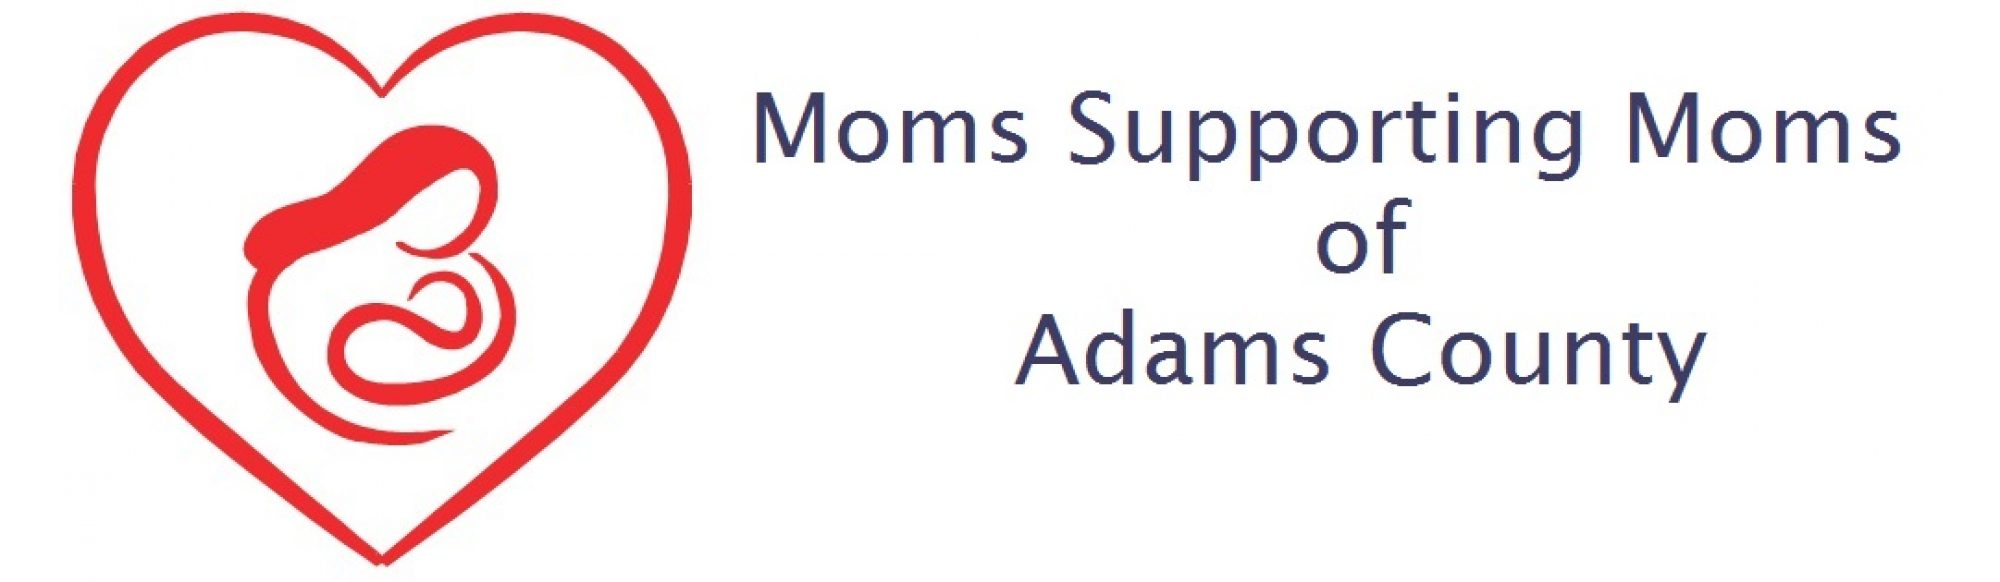 Moms Supporting Moms of Adams County